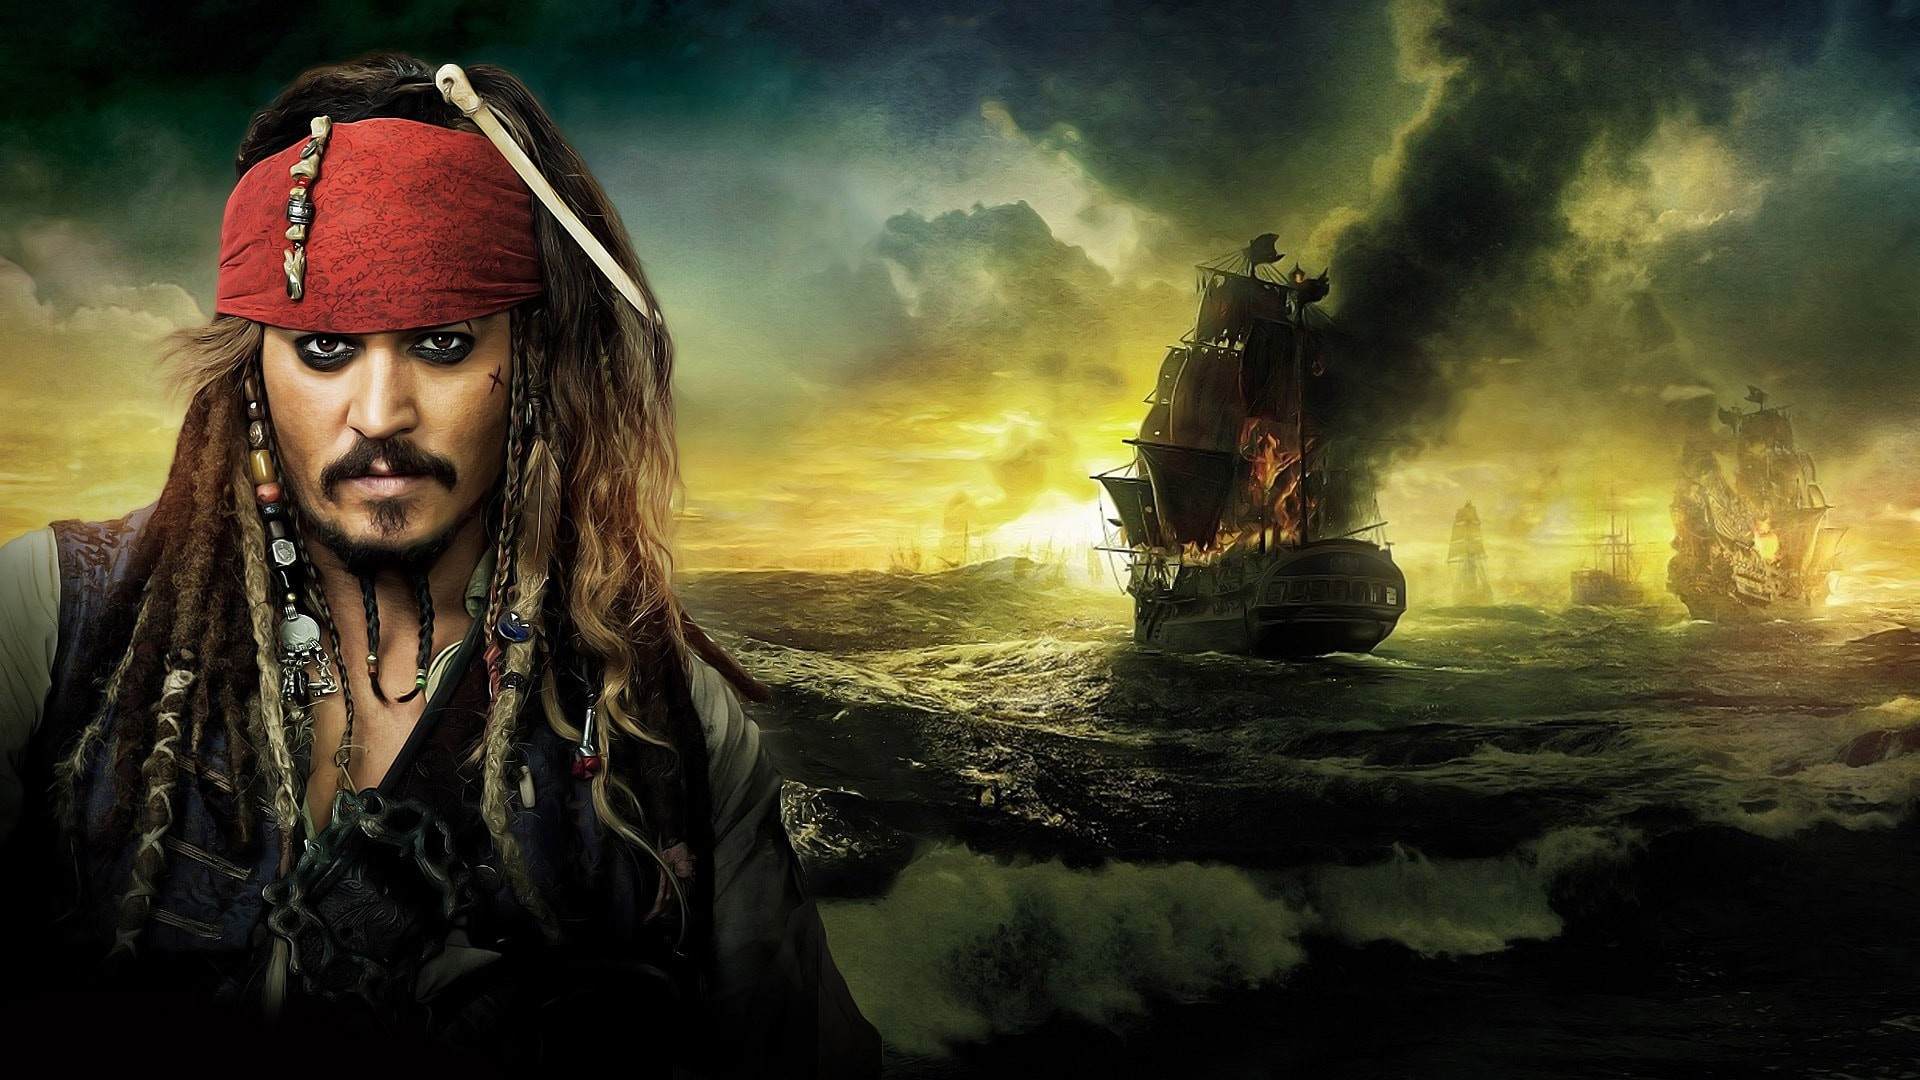 1920x1080 Pirates Of The Caribbean Hd Wallpaper